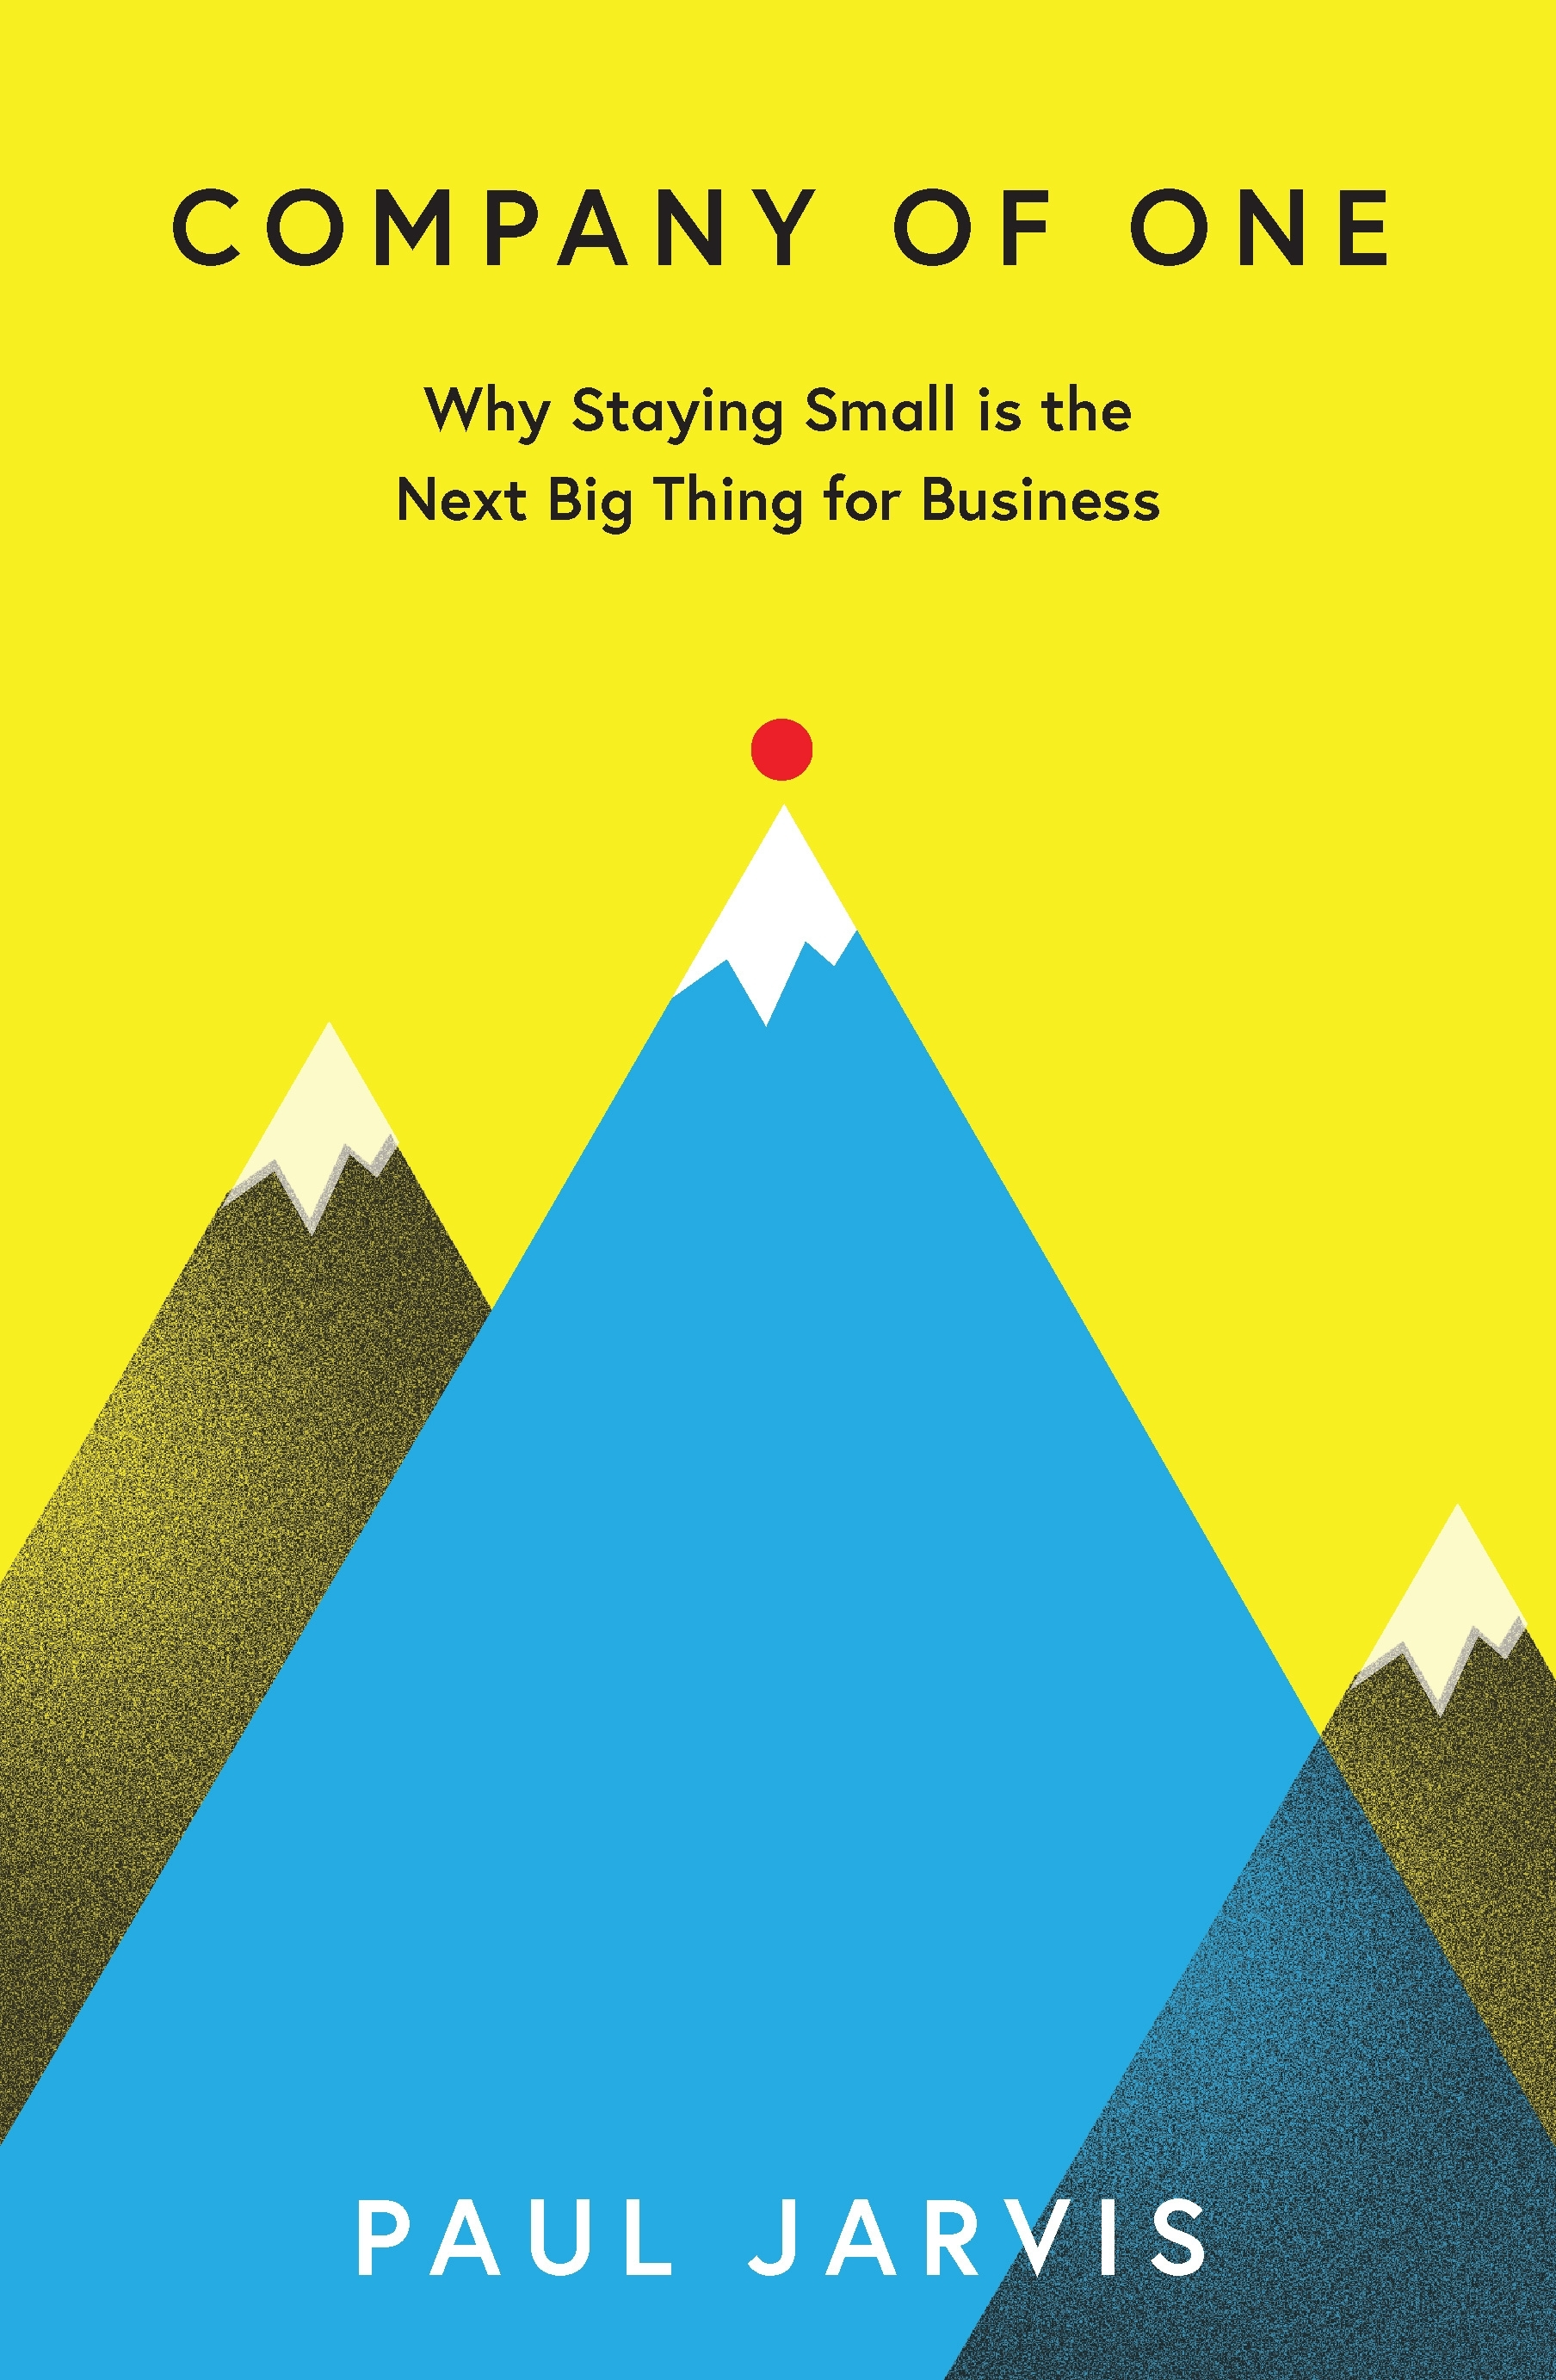 Company of OneWhy Staying Small is the Next Big Thing for Bus... by Paul Jarvis, ISBN: 9780241380222